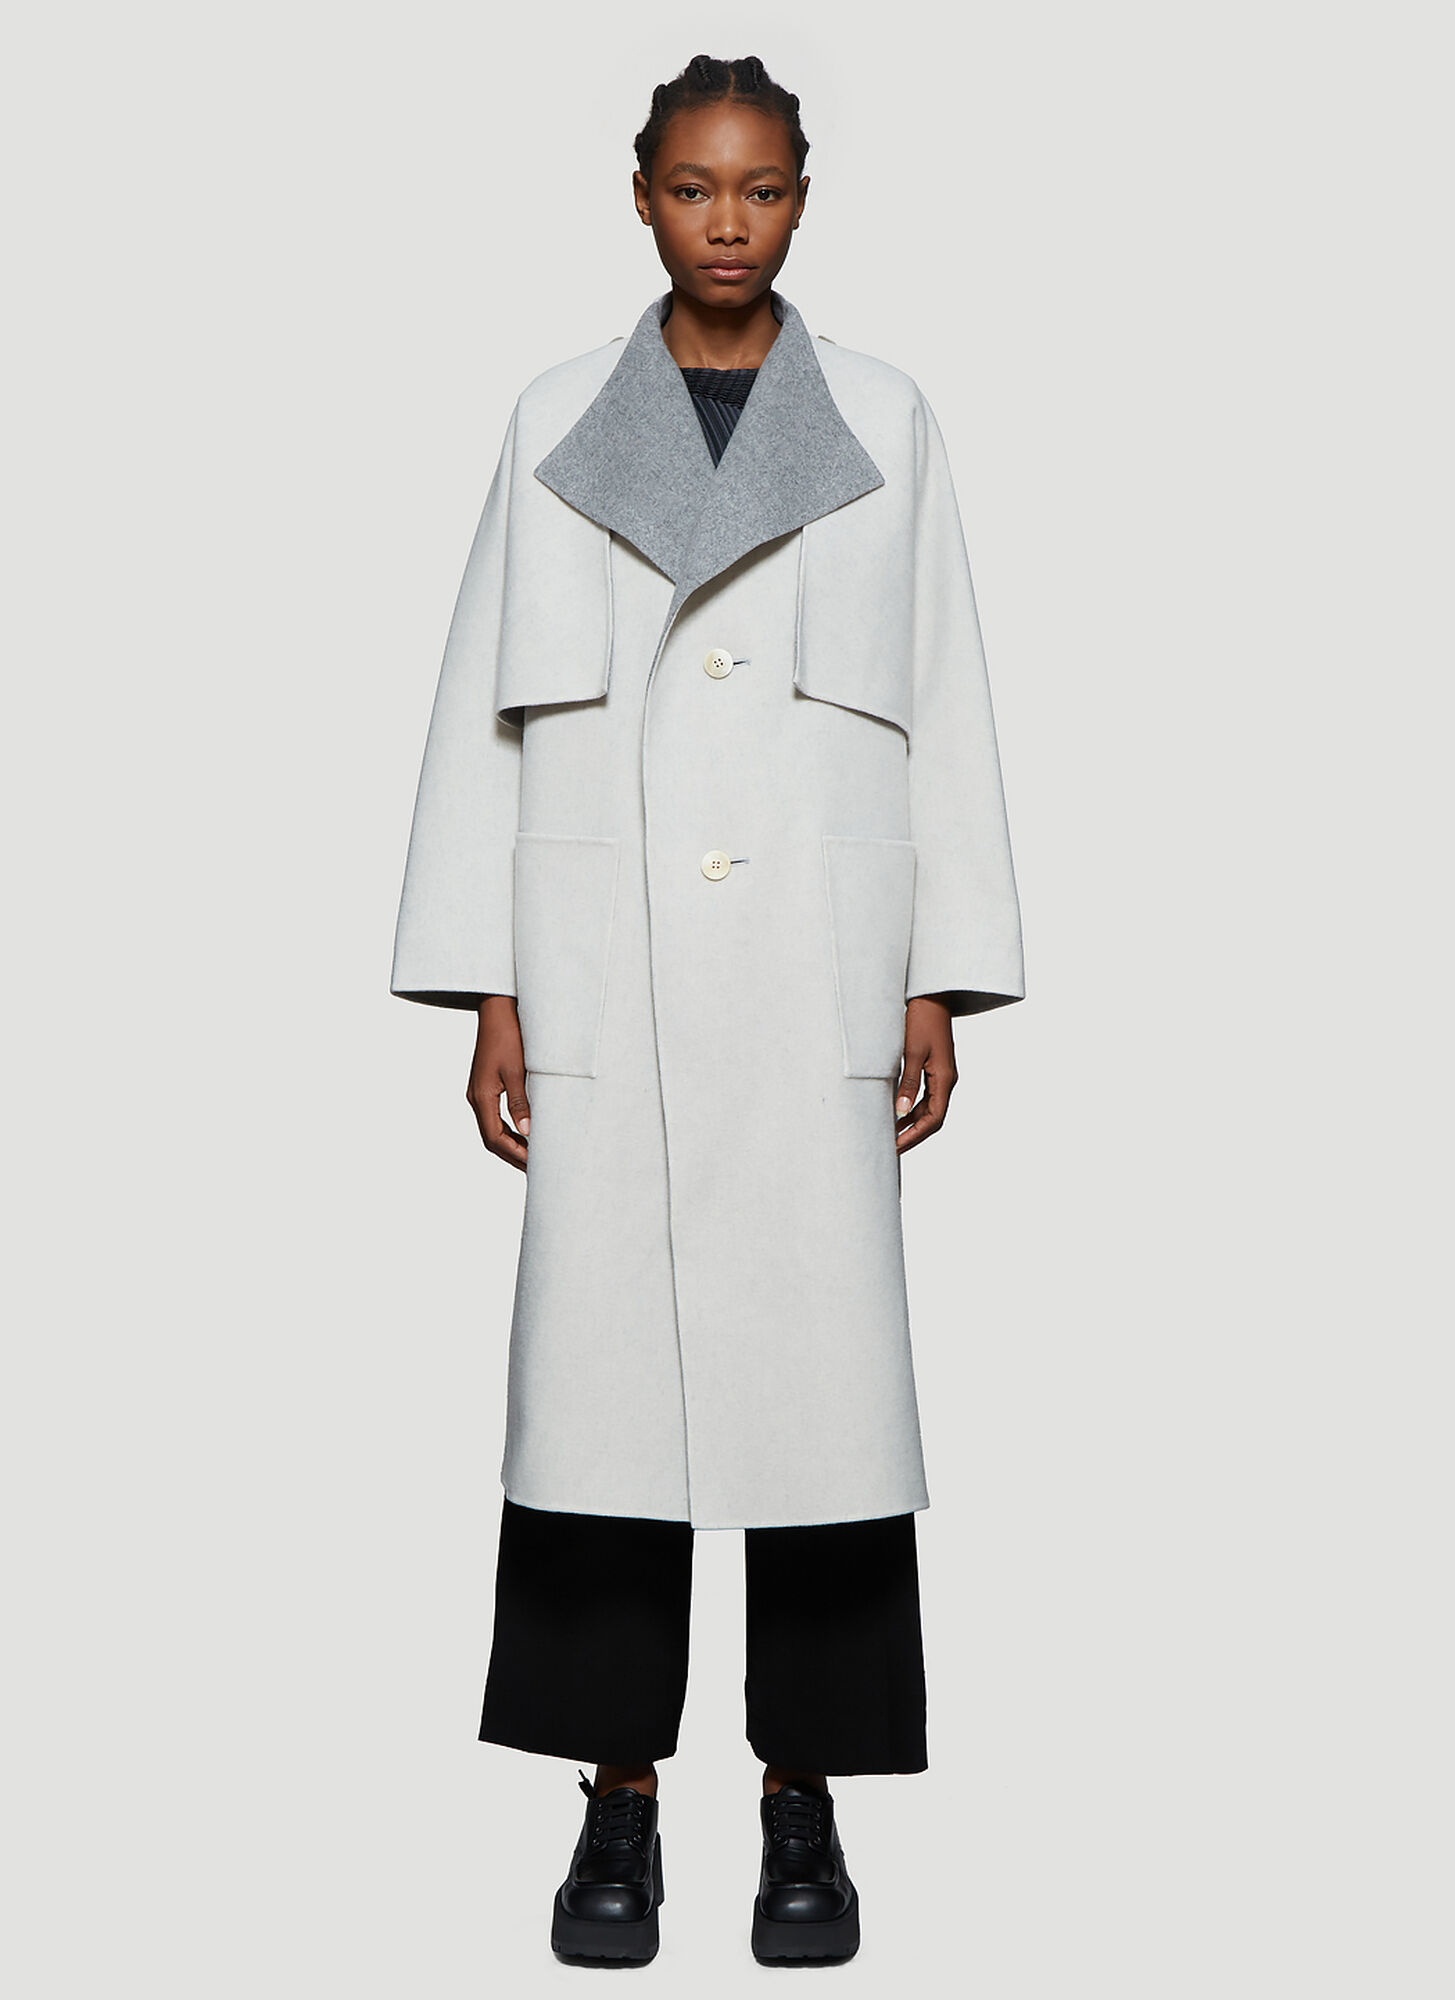 Issey Miyake Reversible Wool and Cashmere Blend Coat in Grey